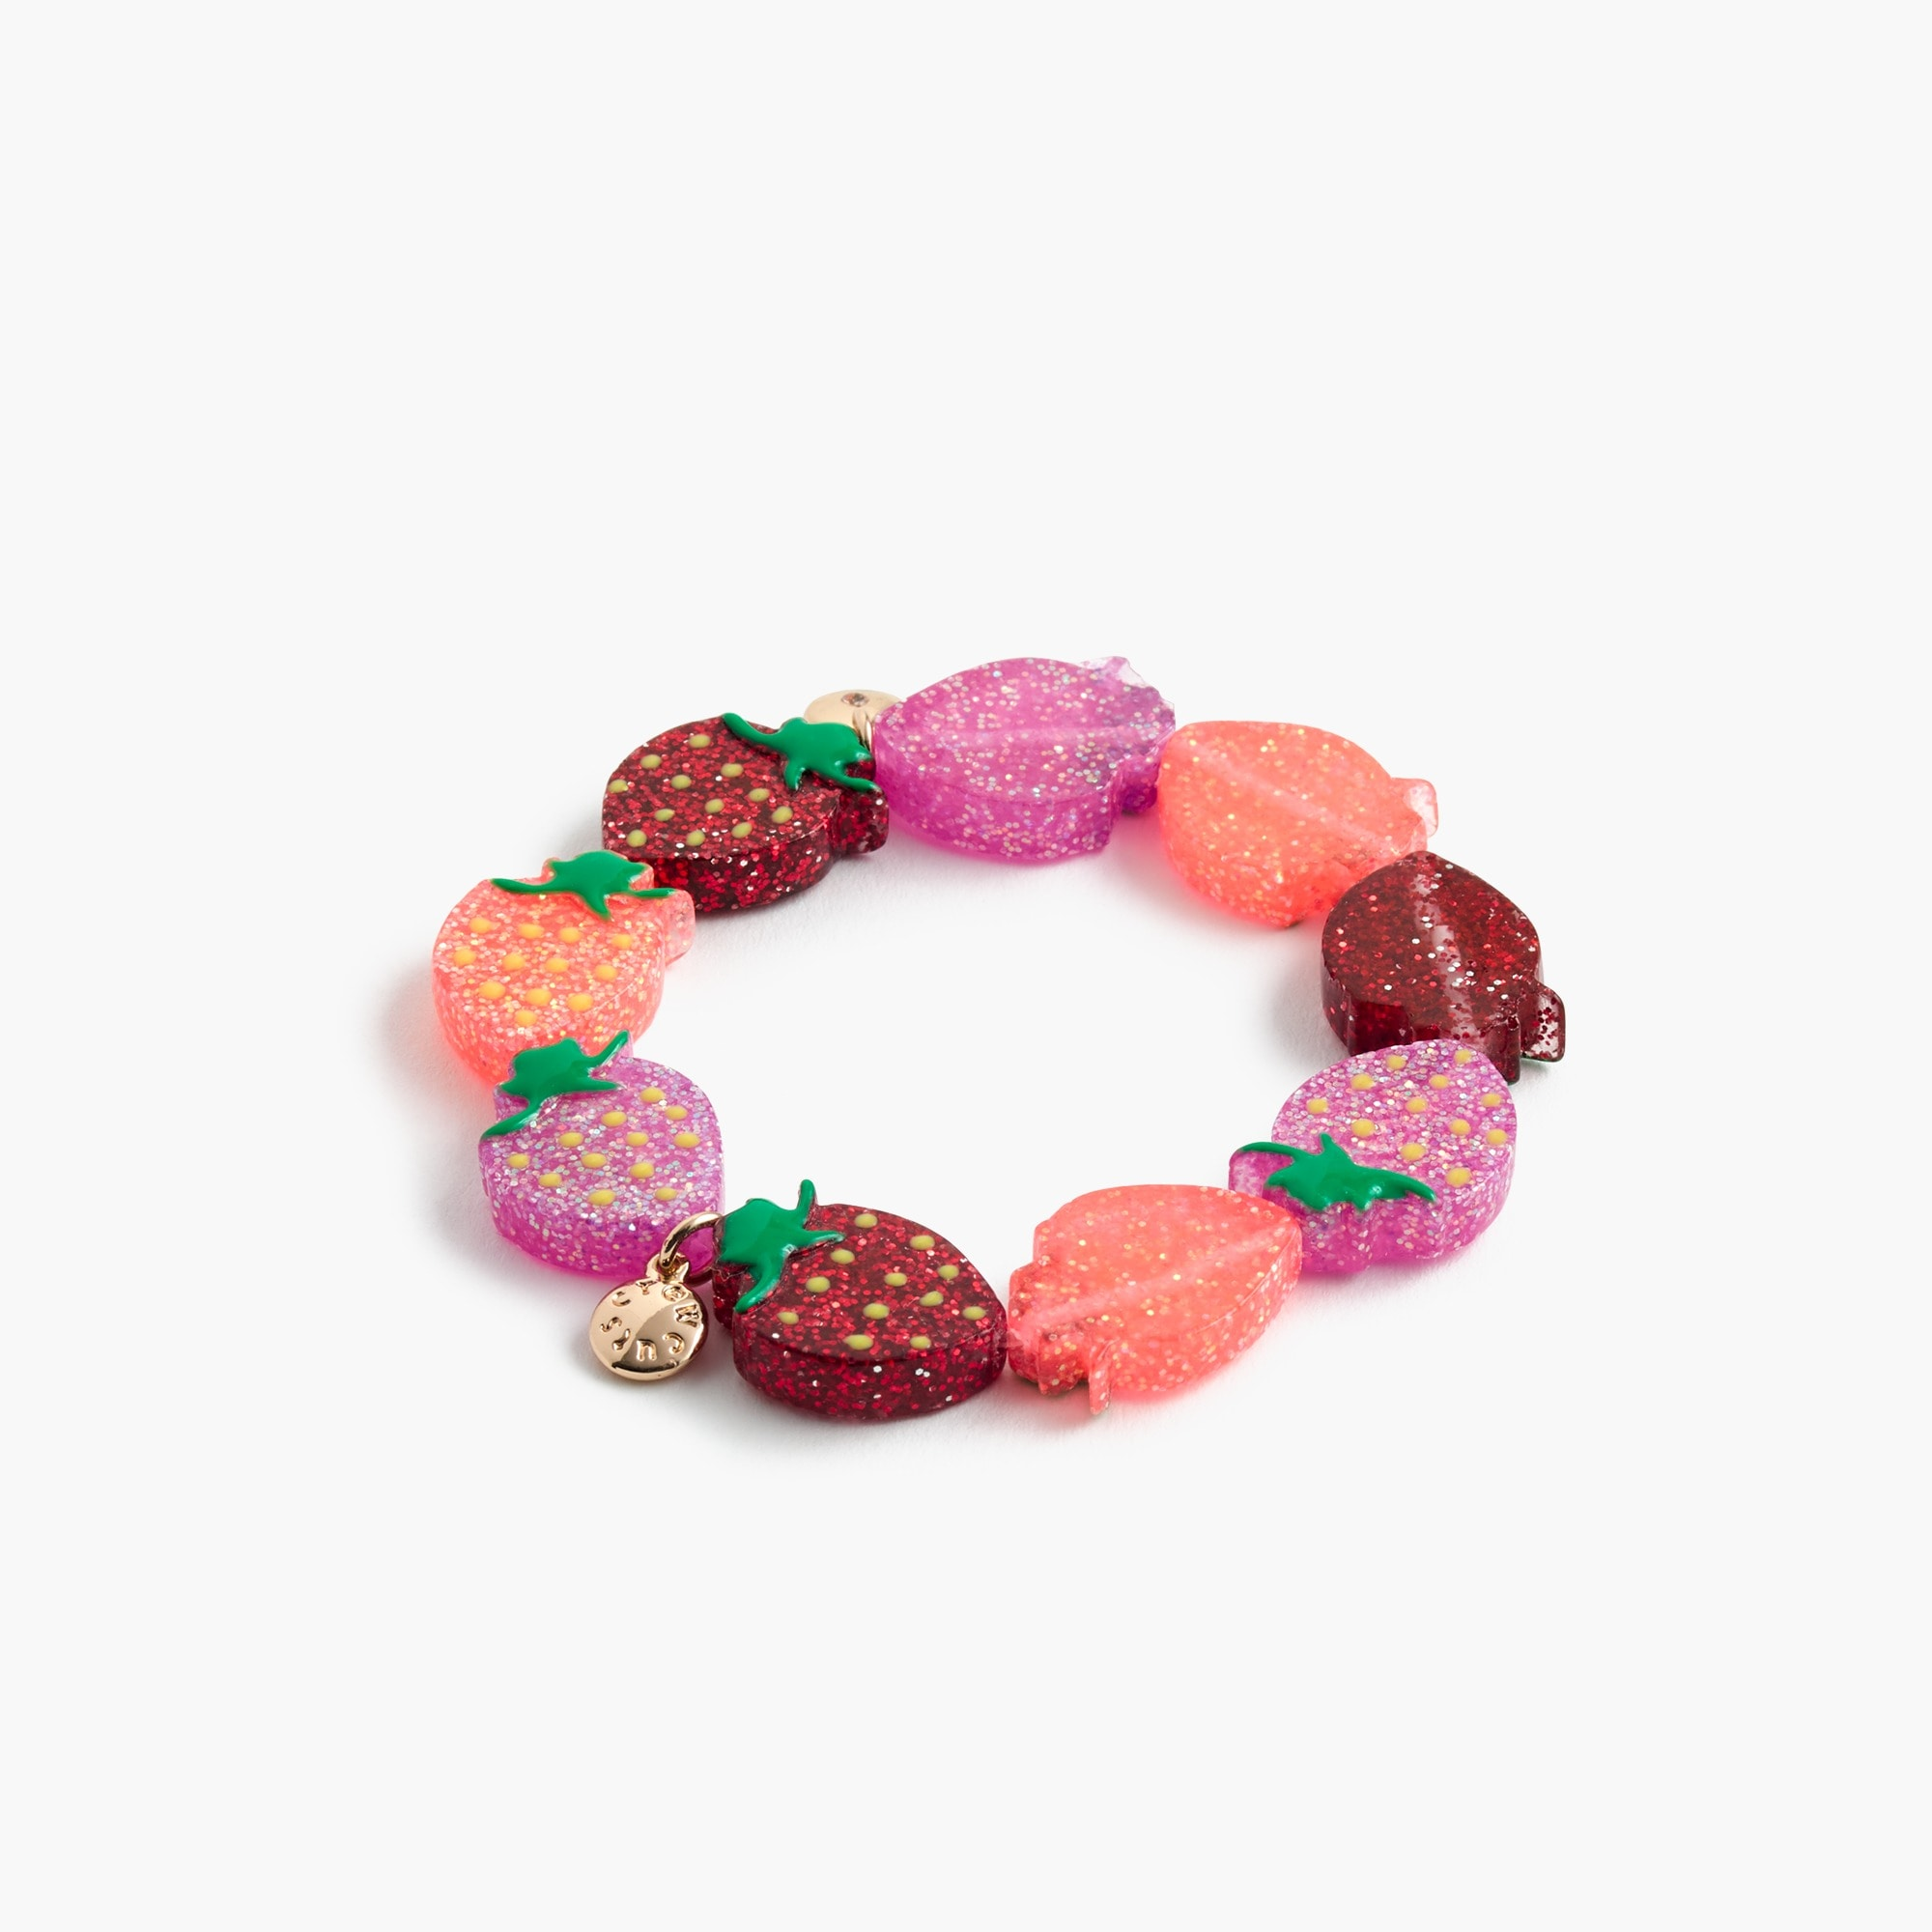 Girls' strawberry bracelet girl jewelry & accessories c